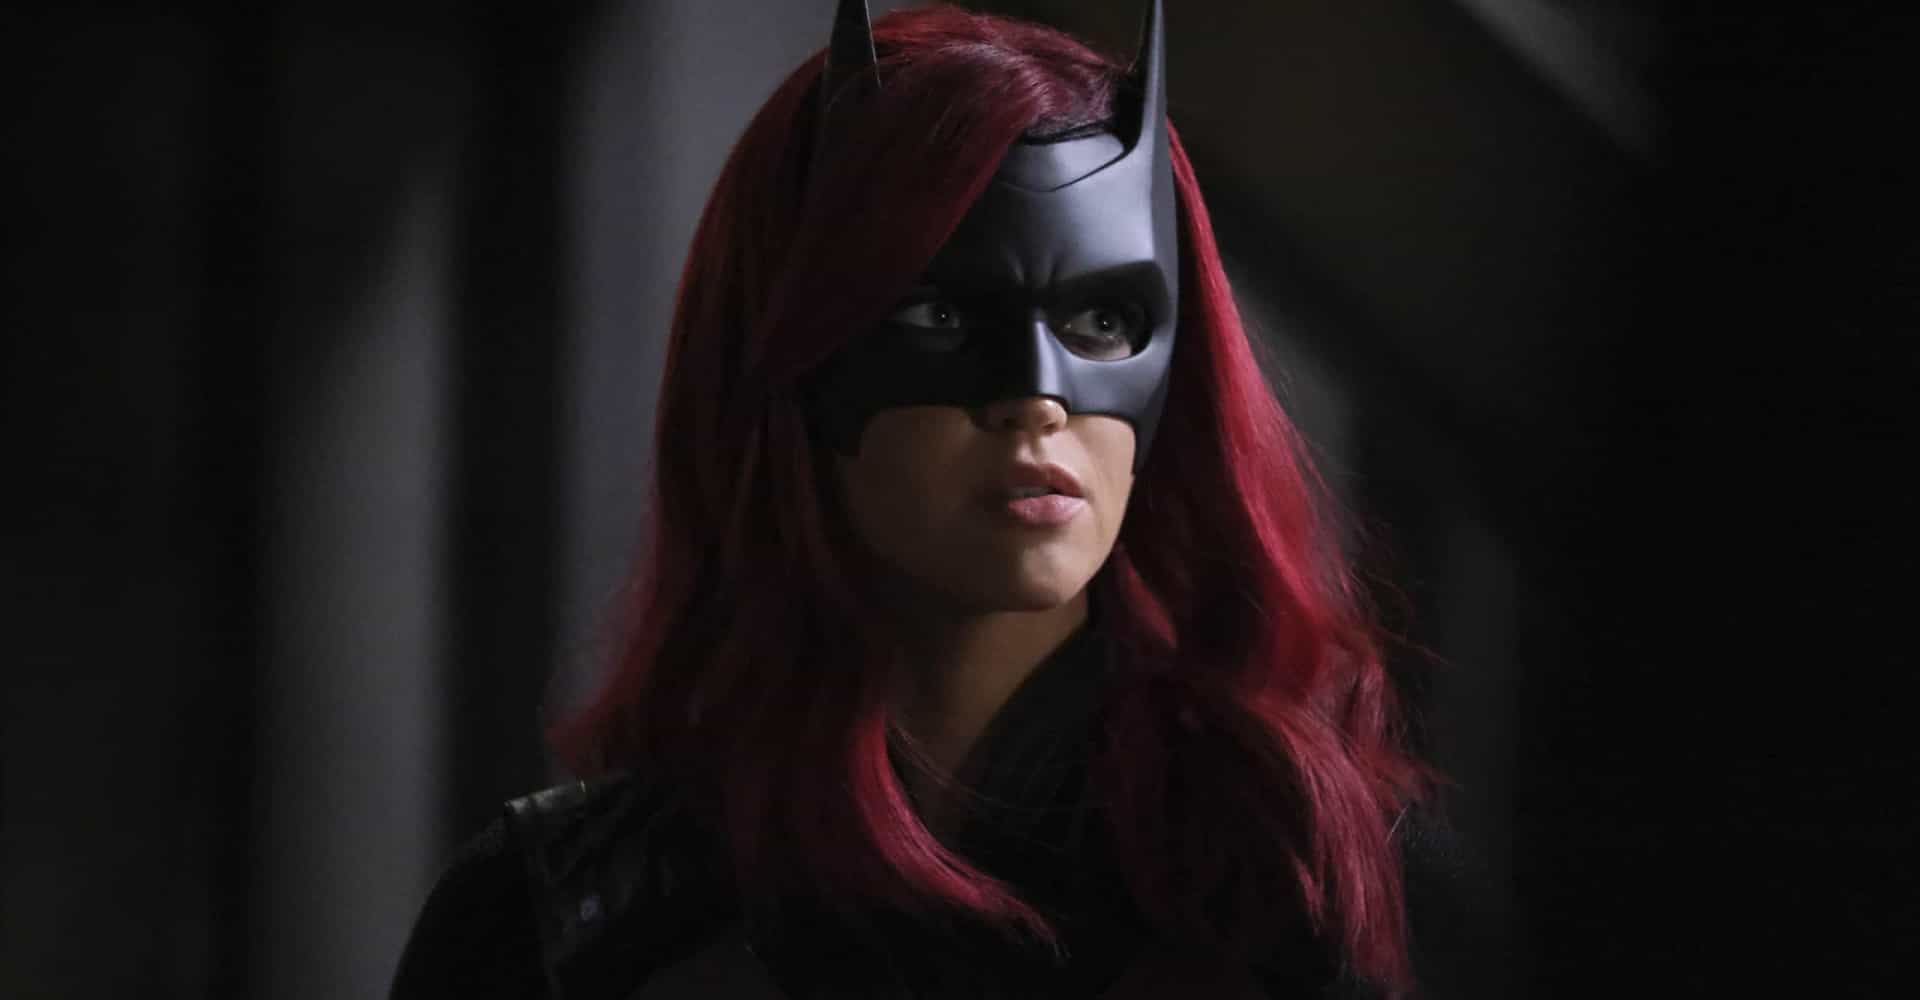 Batwoman and other LGBT superheroes and villains on TV